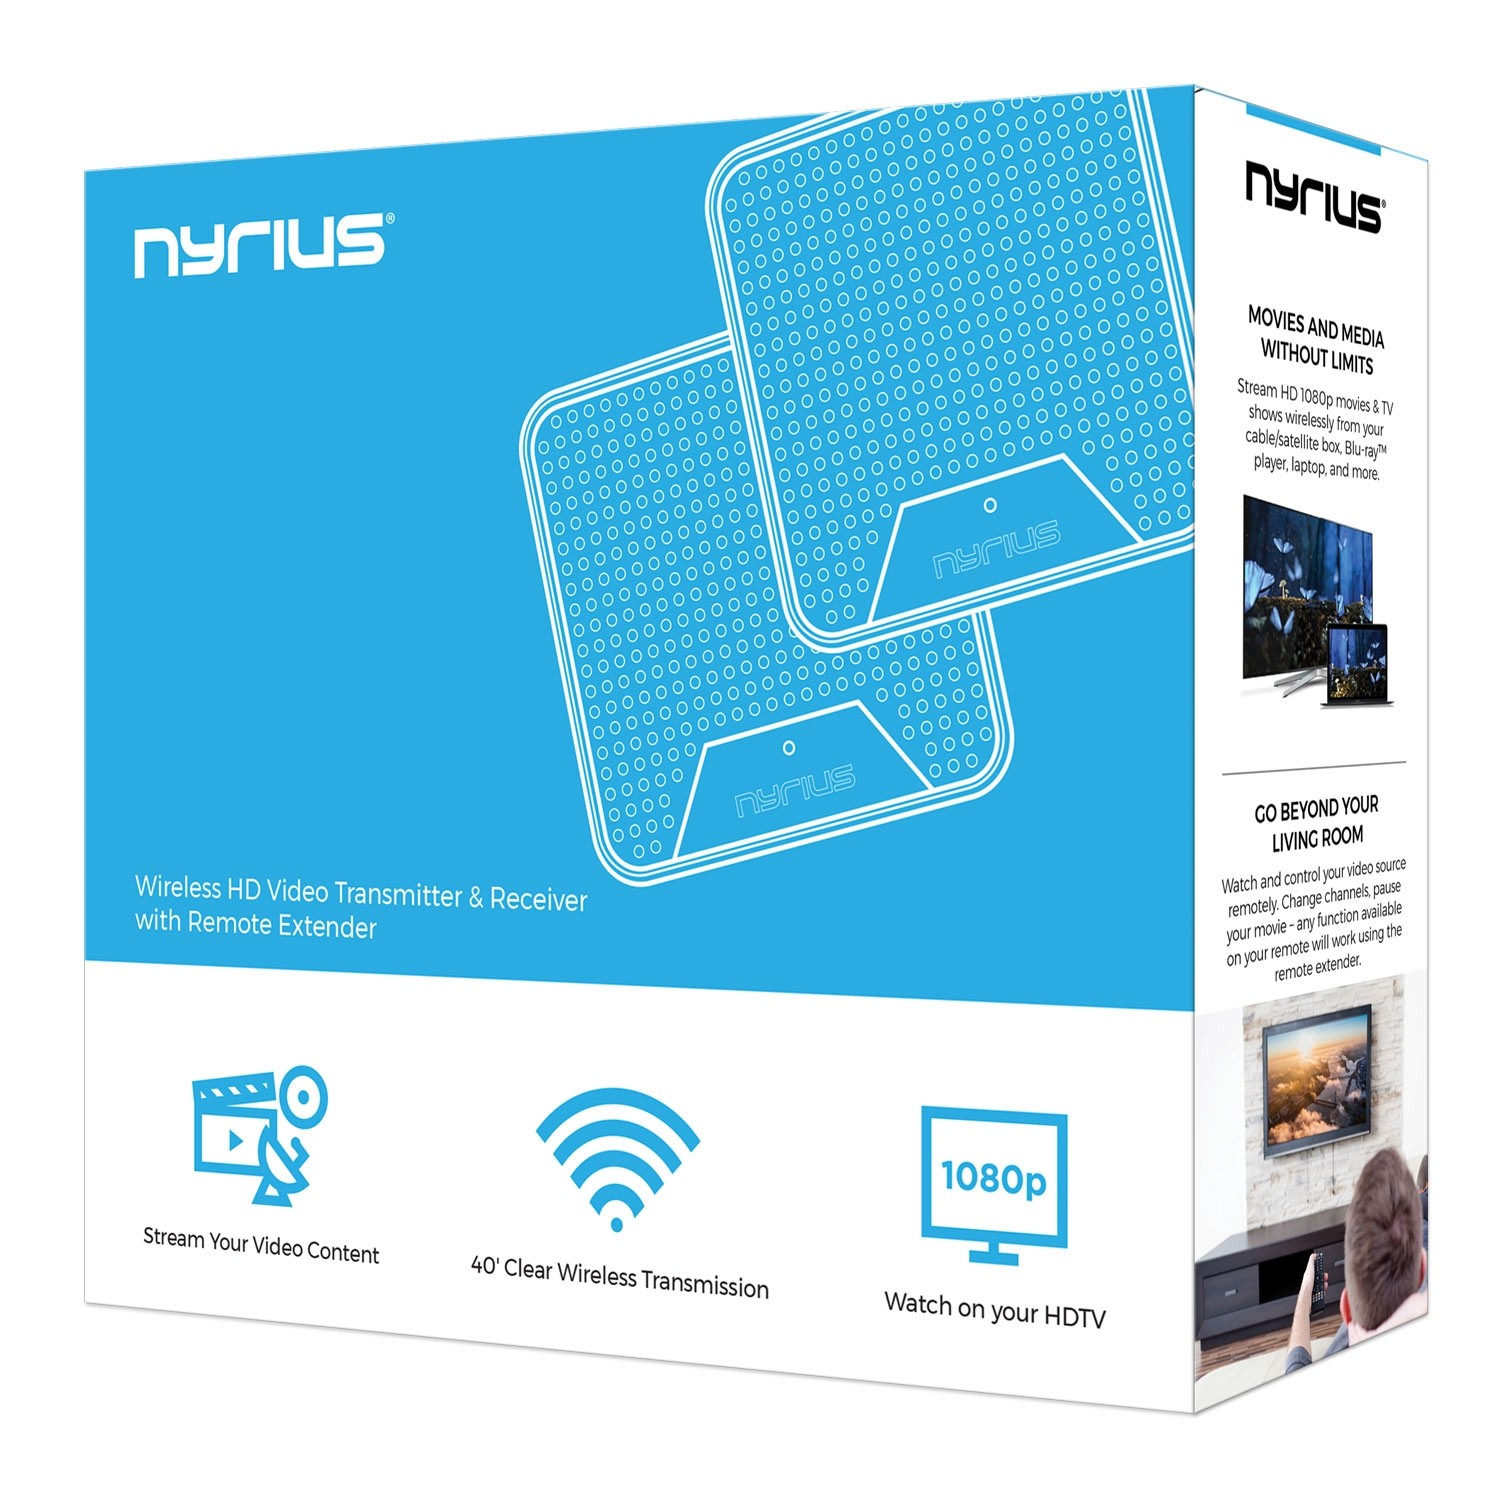 ORION Home Wireless HD Video Transmitter & Receiver | Nyrius